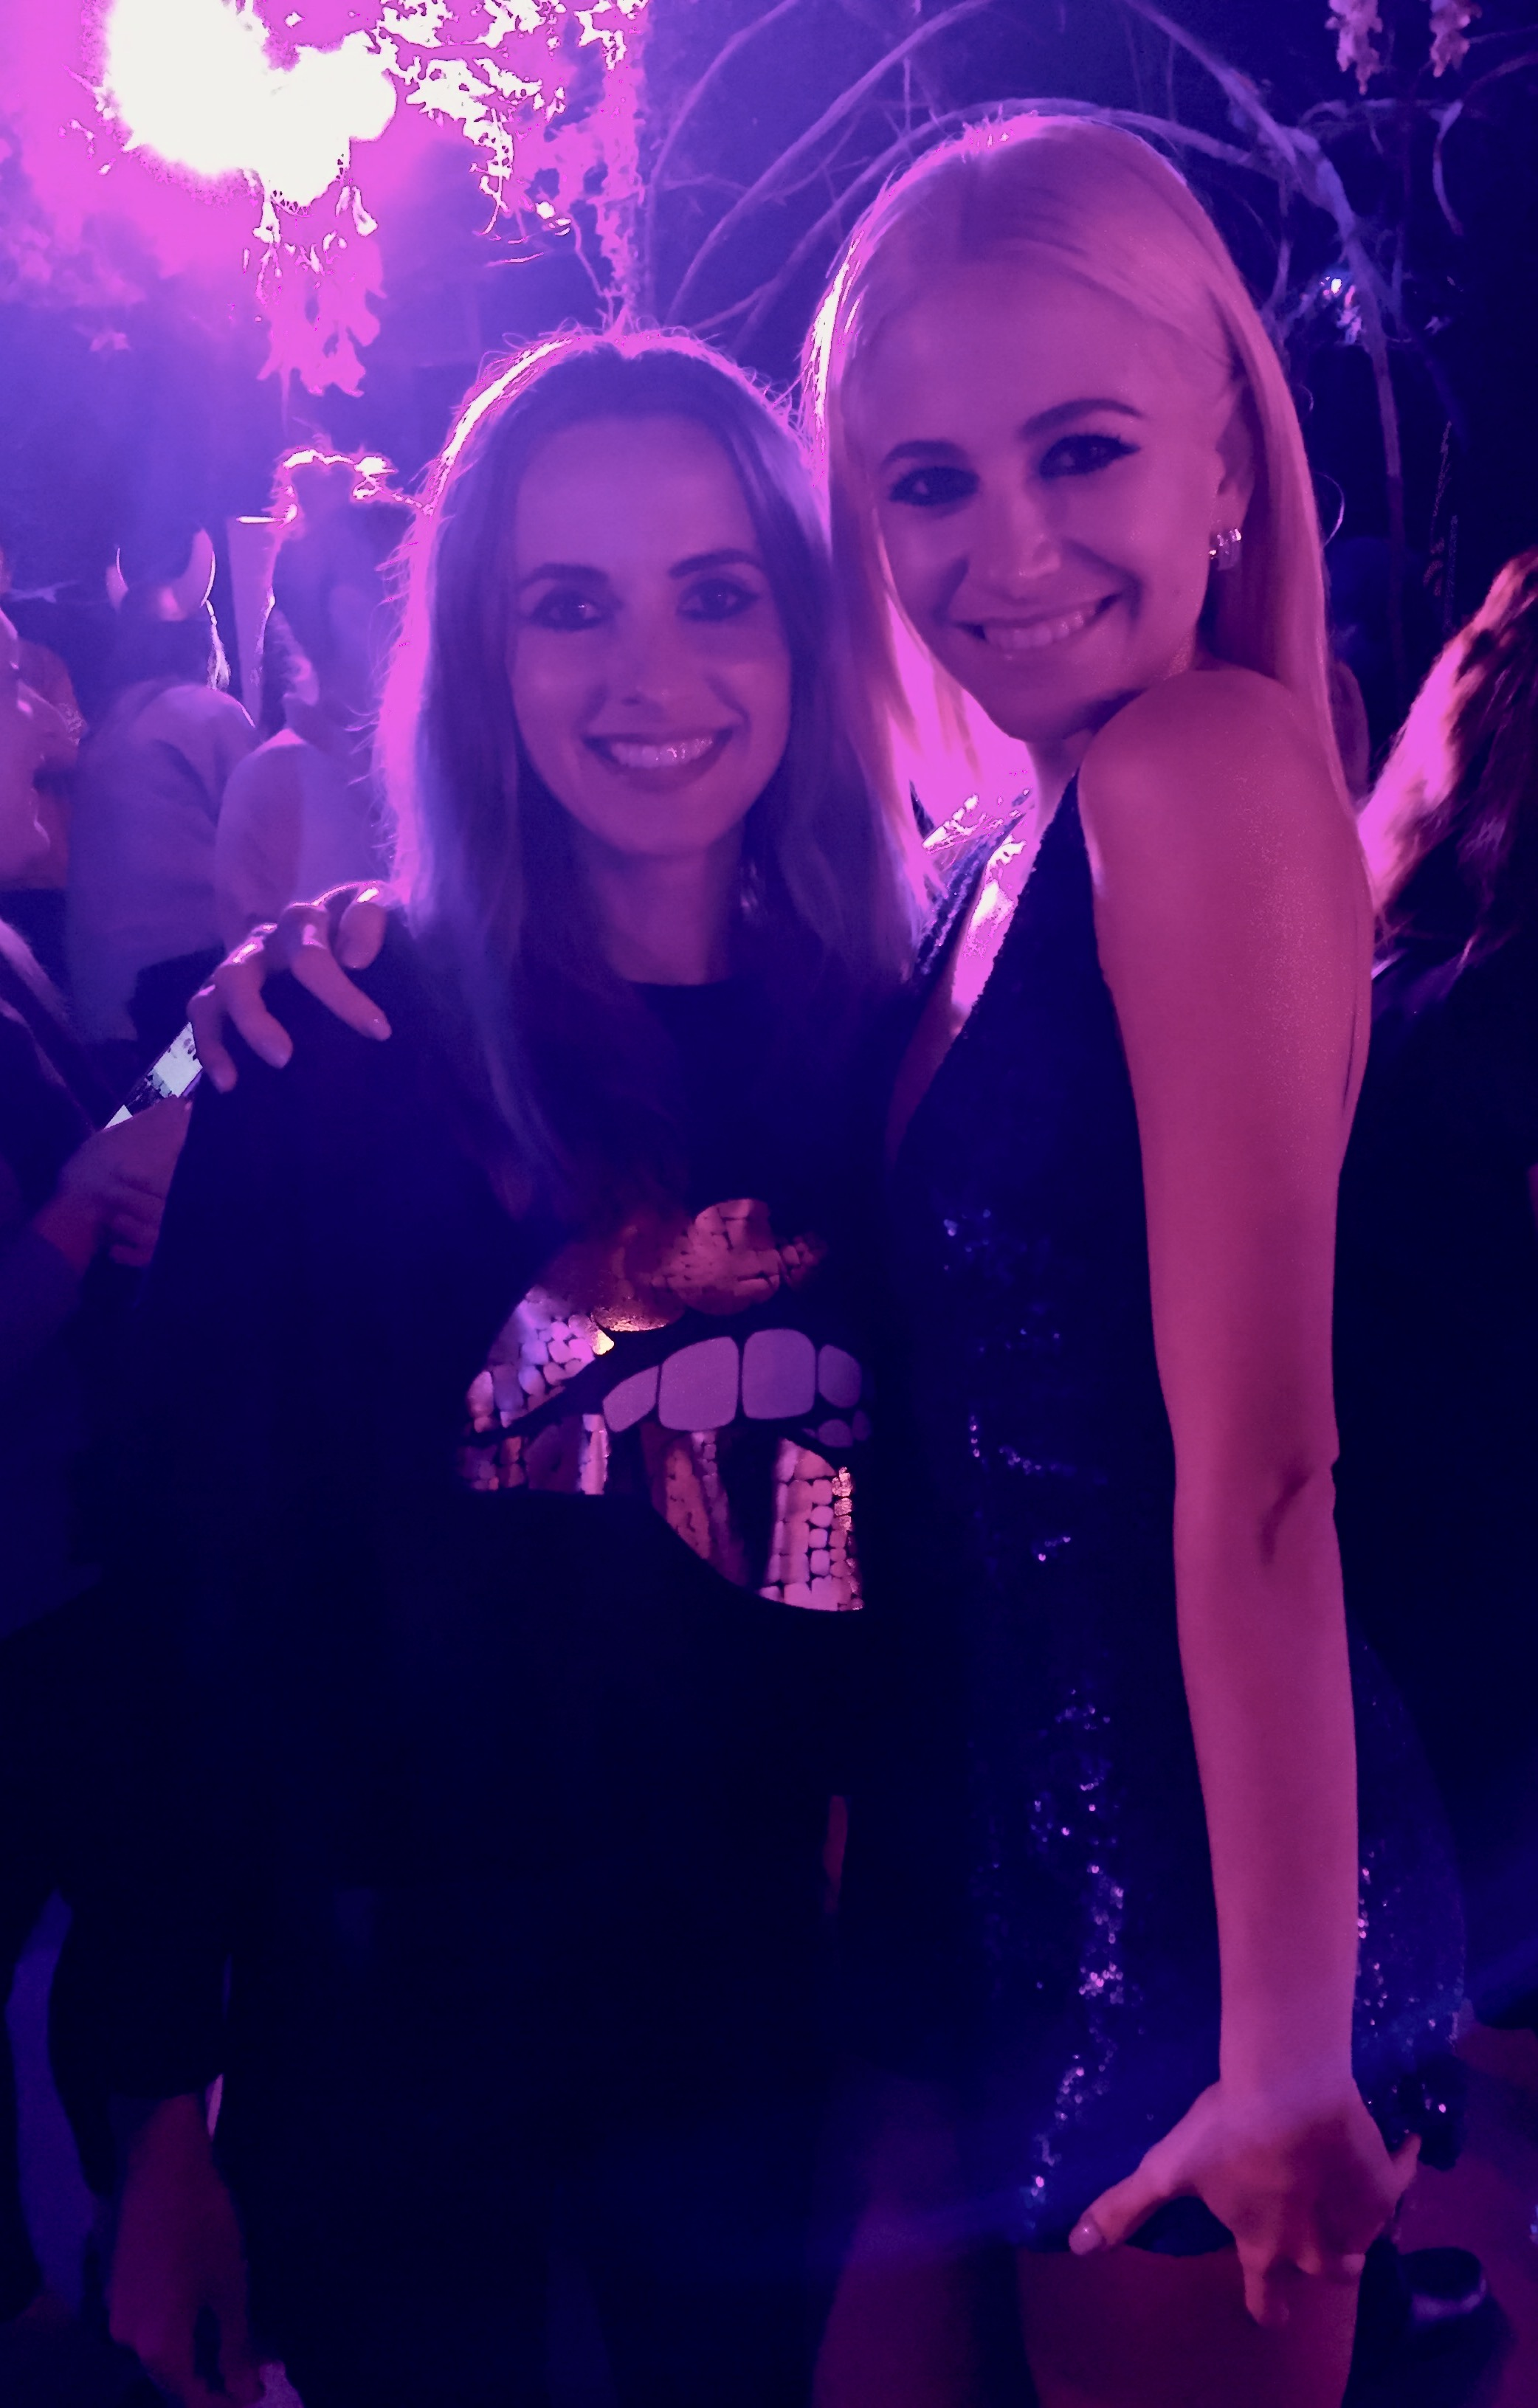 Pixie Lott Paint Launch at Cuckoo Club London - Pixie Lott launched the newest addition to her Pixie Lott Paint range. As the Belle About Town contributor, I went to investigate and had a short chat with the talented singer.